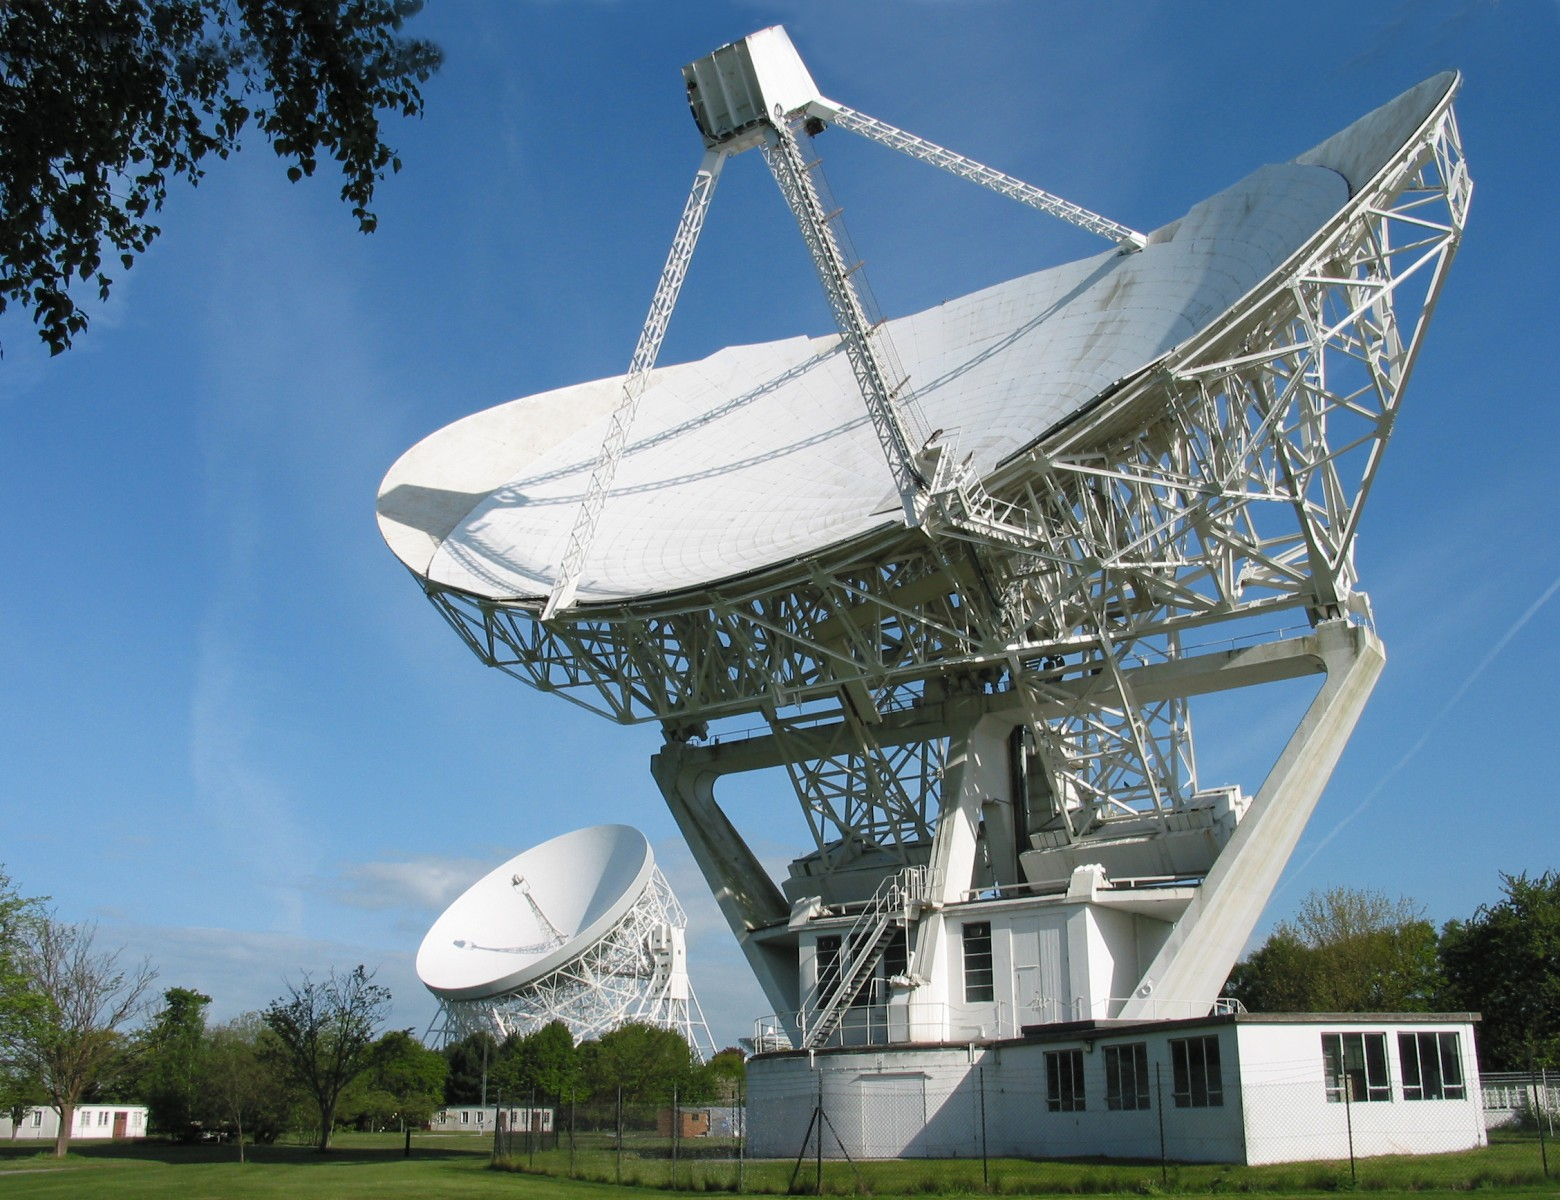 Mark II at Jodrell Bank